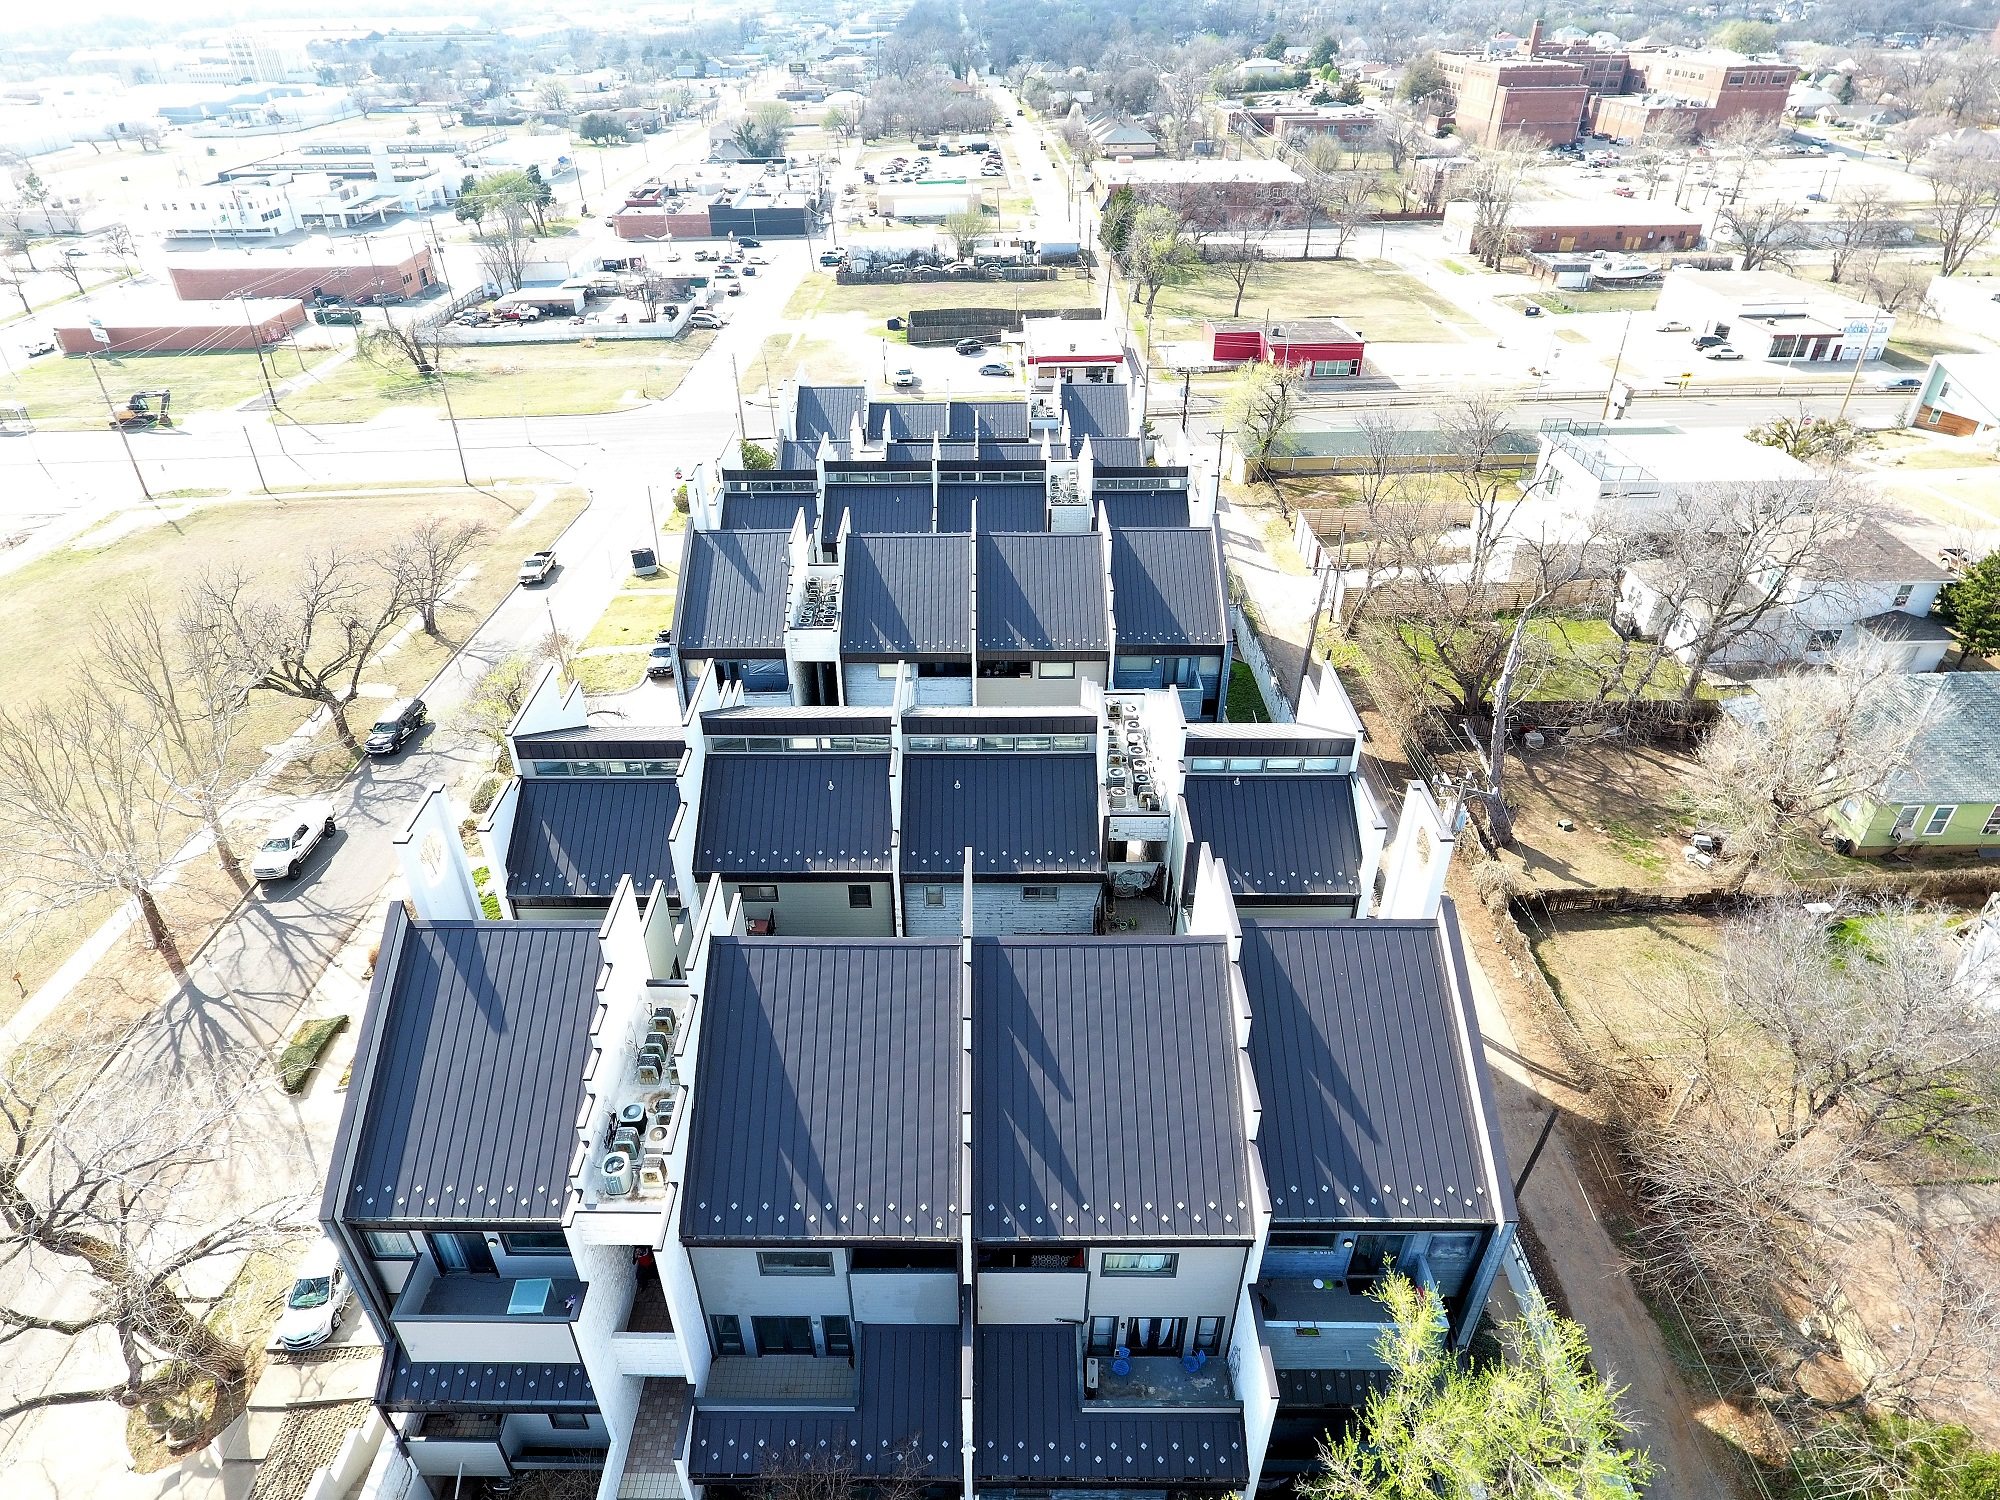 Standing seam metal roof replacement, gutters and downspouts, and exterior coatings on OKC Condominium complex.